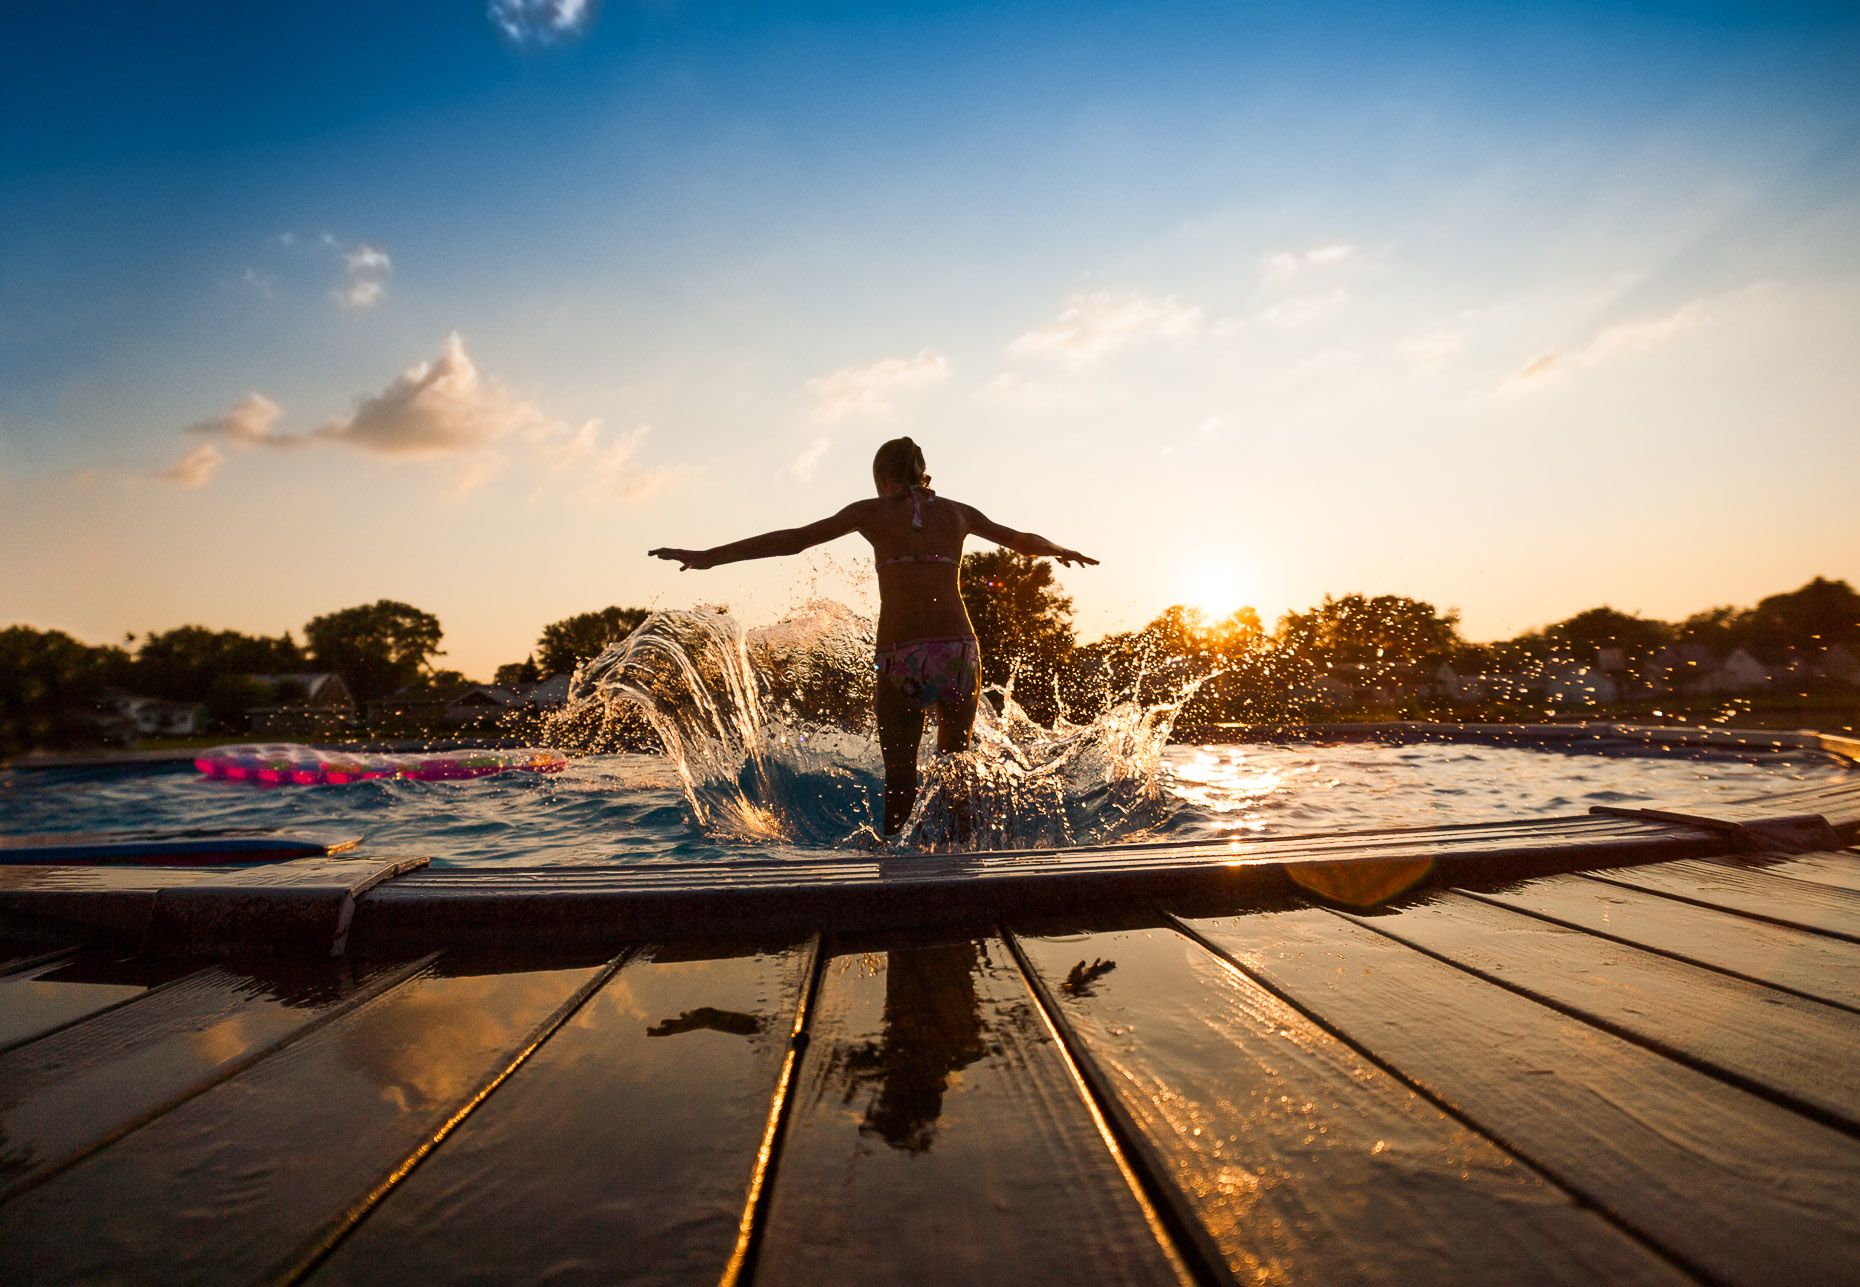 aaron-ingrao-Child-Swimming-pool-playing-splash-sunset